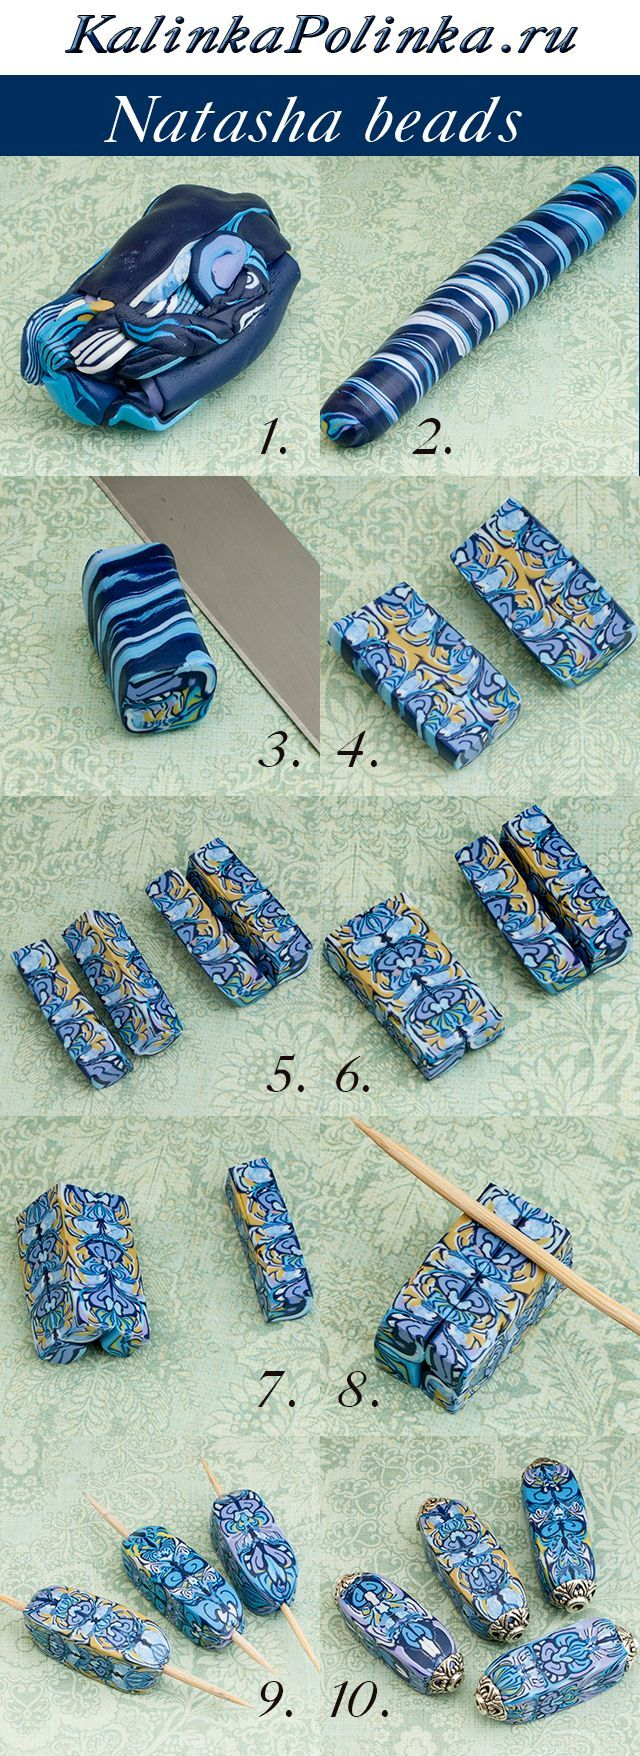 Natasha beads ~ Polymer Clay picture Tutorials